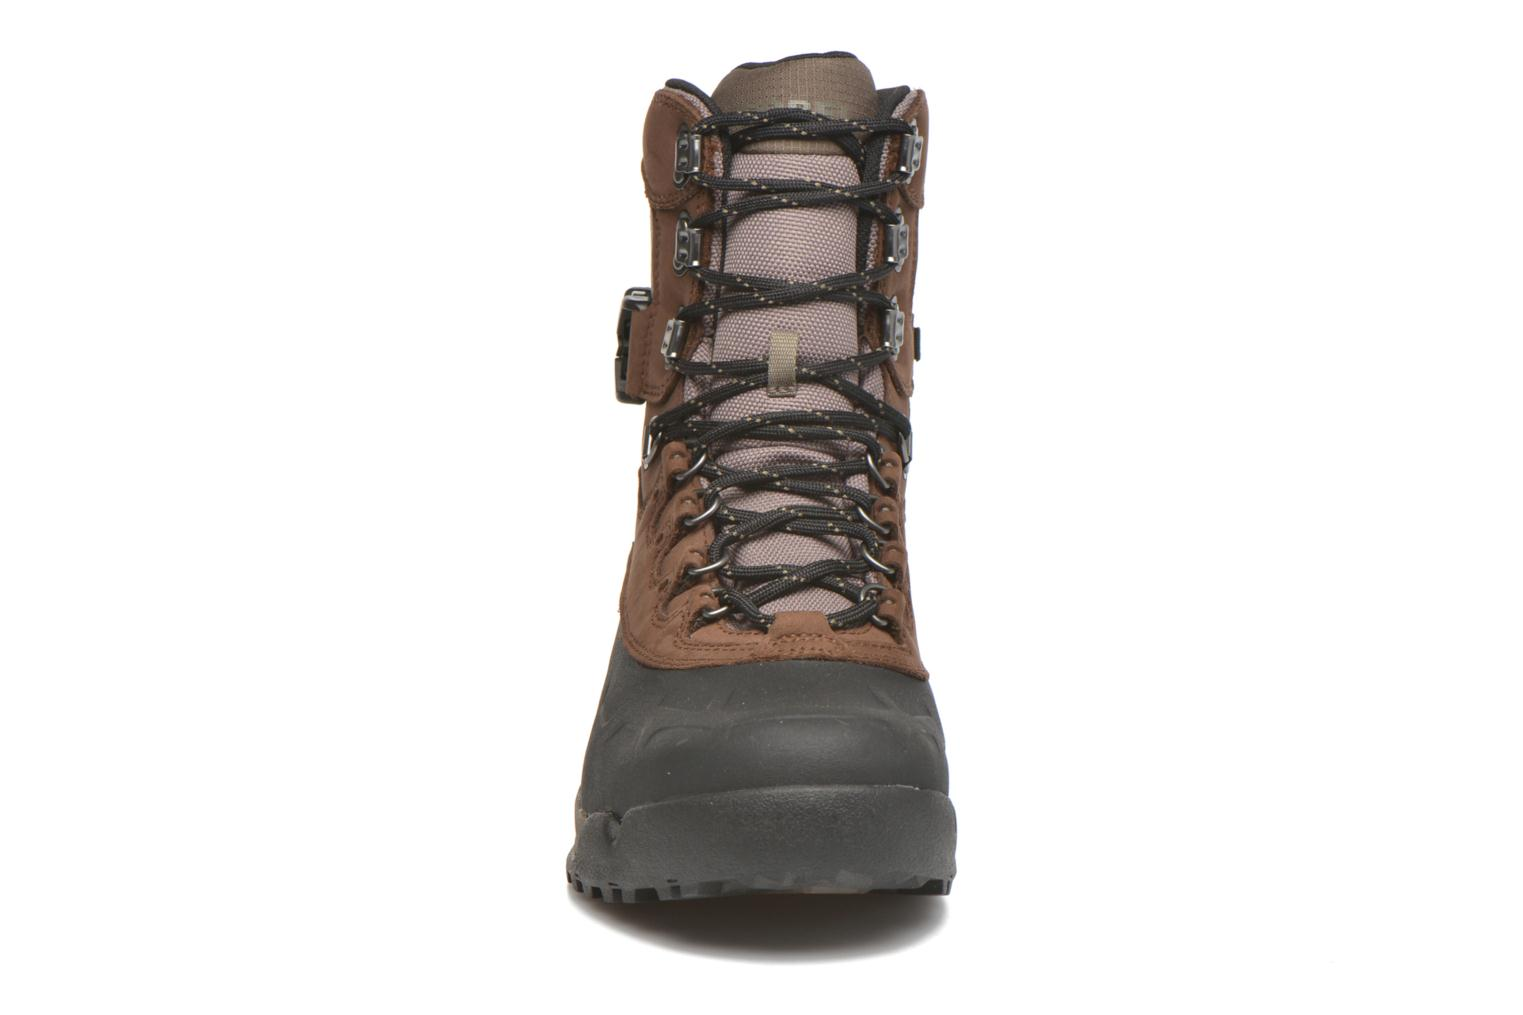 Sorel Paxson Tall Waterproof Tobacco